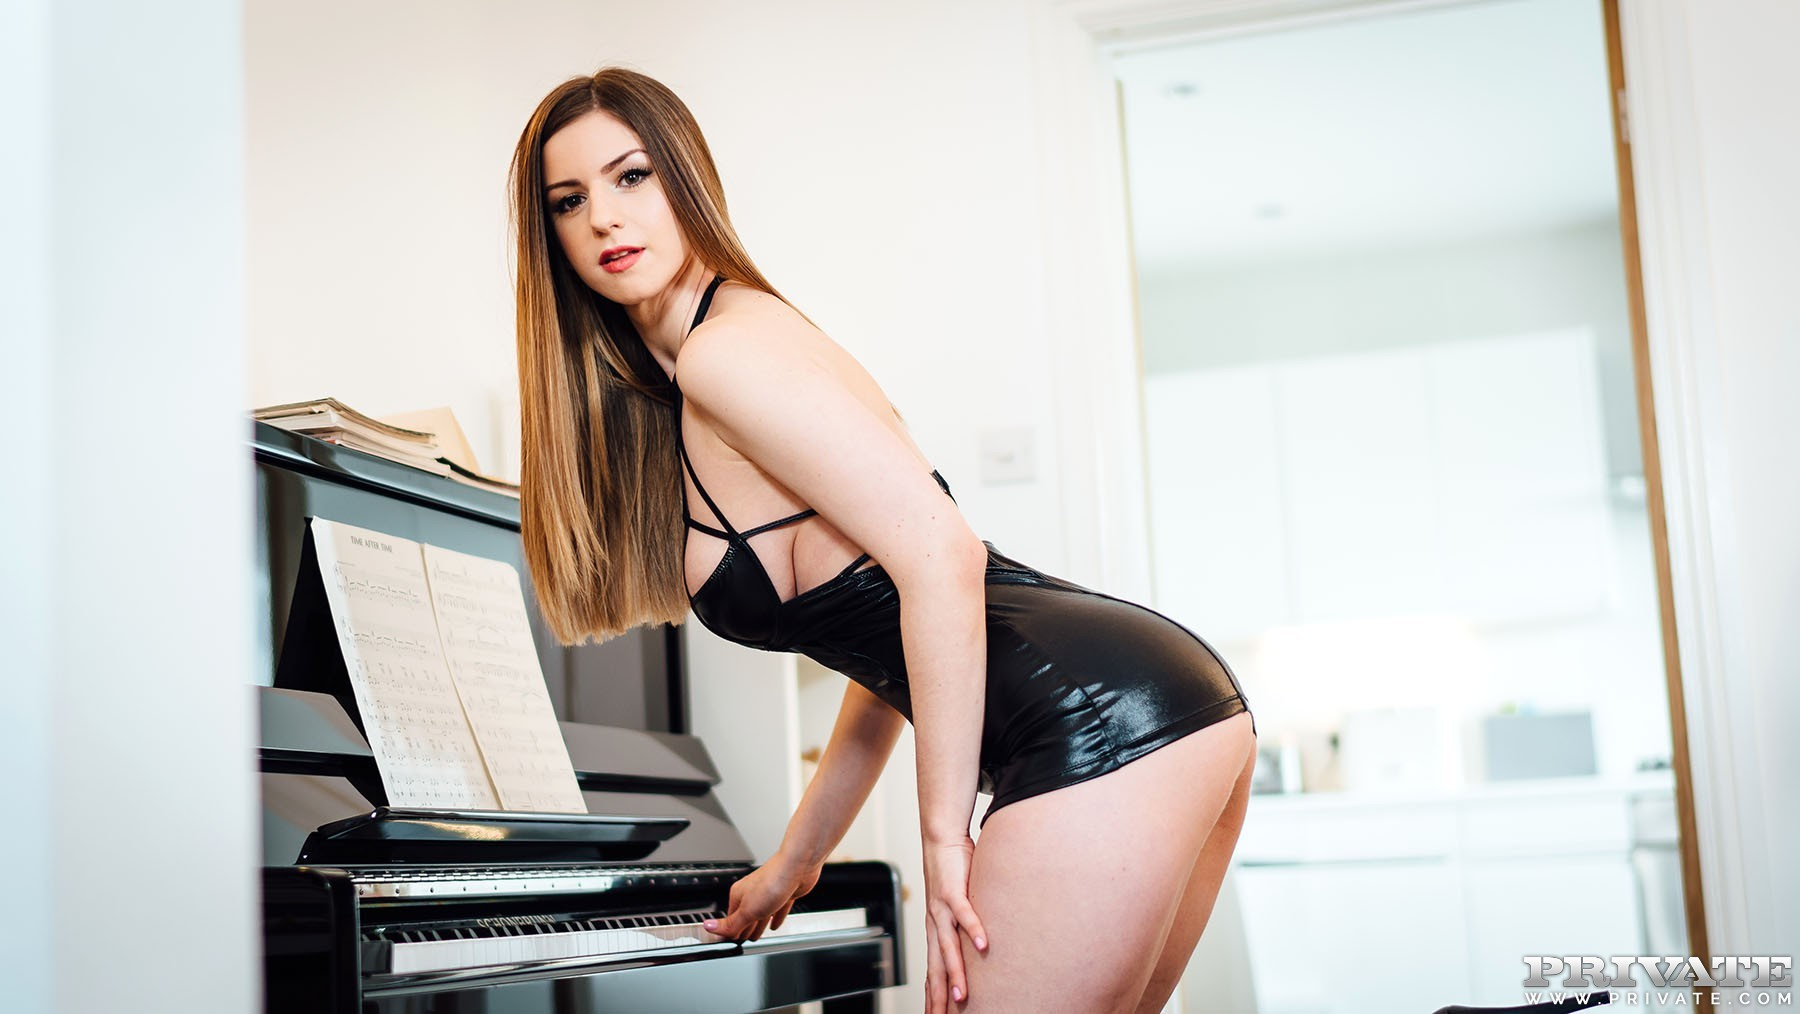 Stella Cox Loves To Get Cum On Her Big Tits - Private 83982-7261